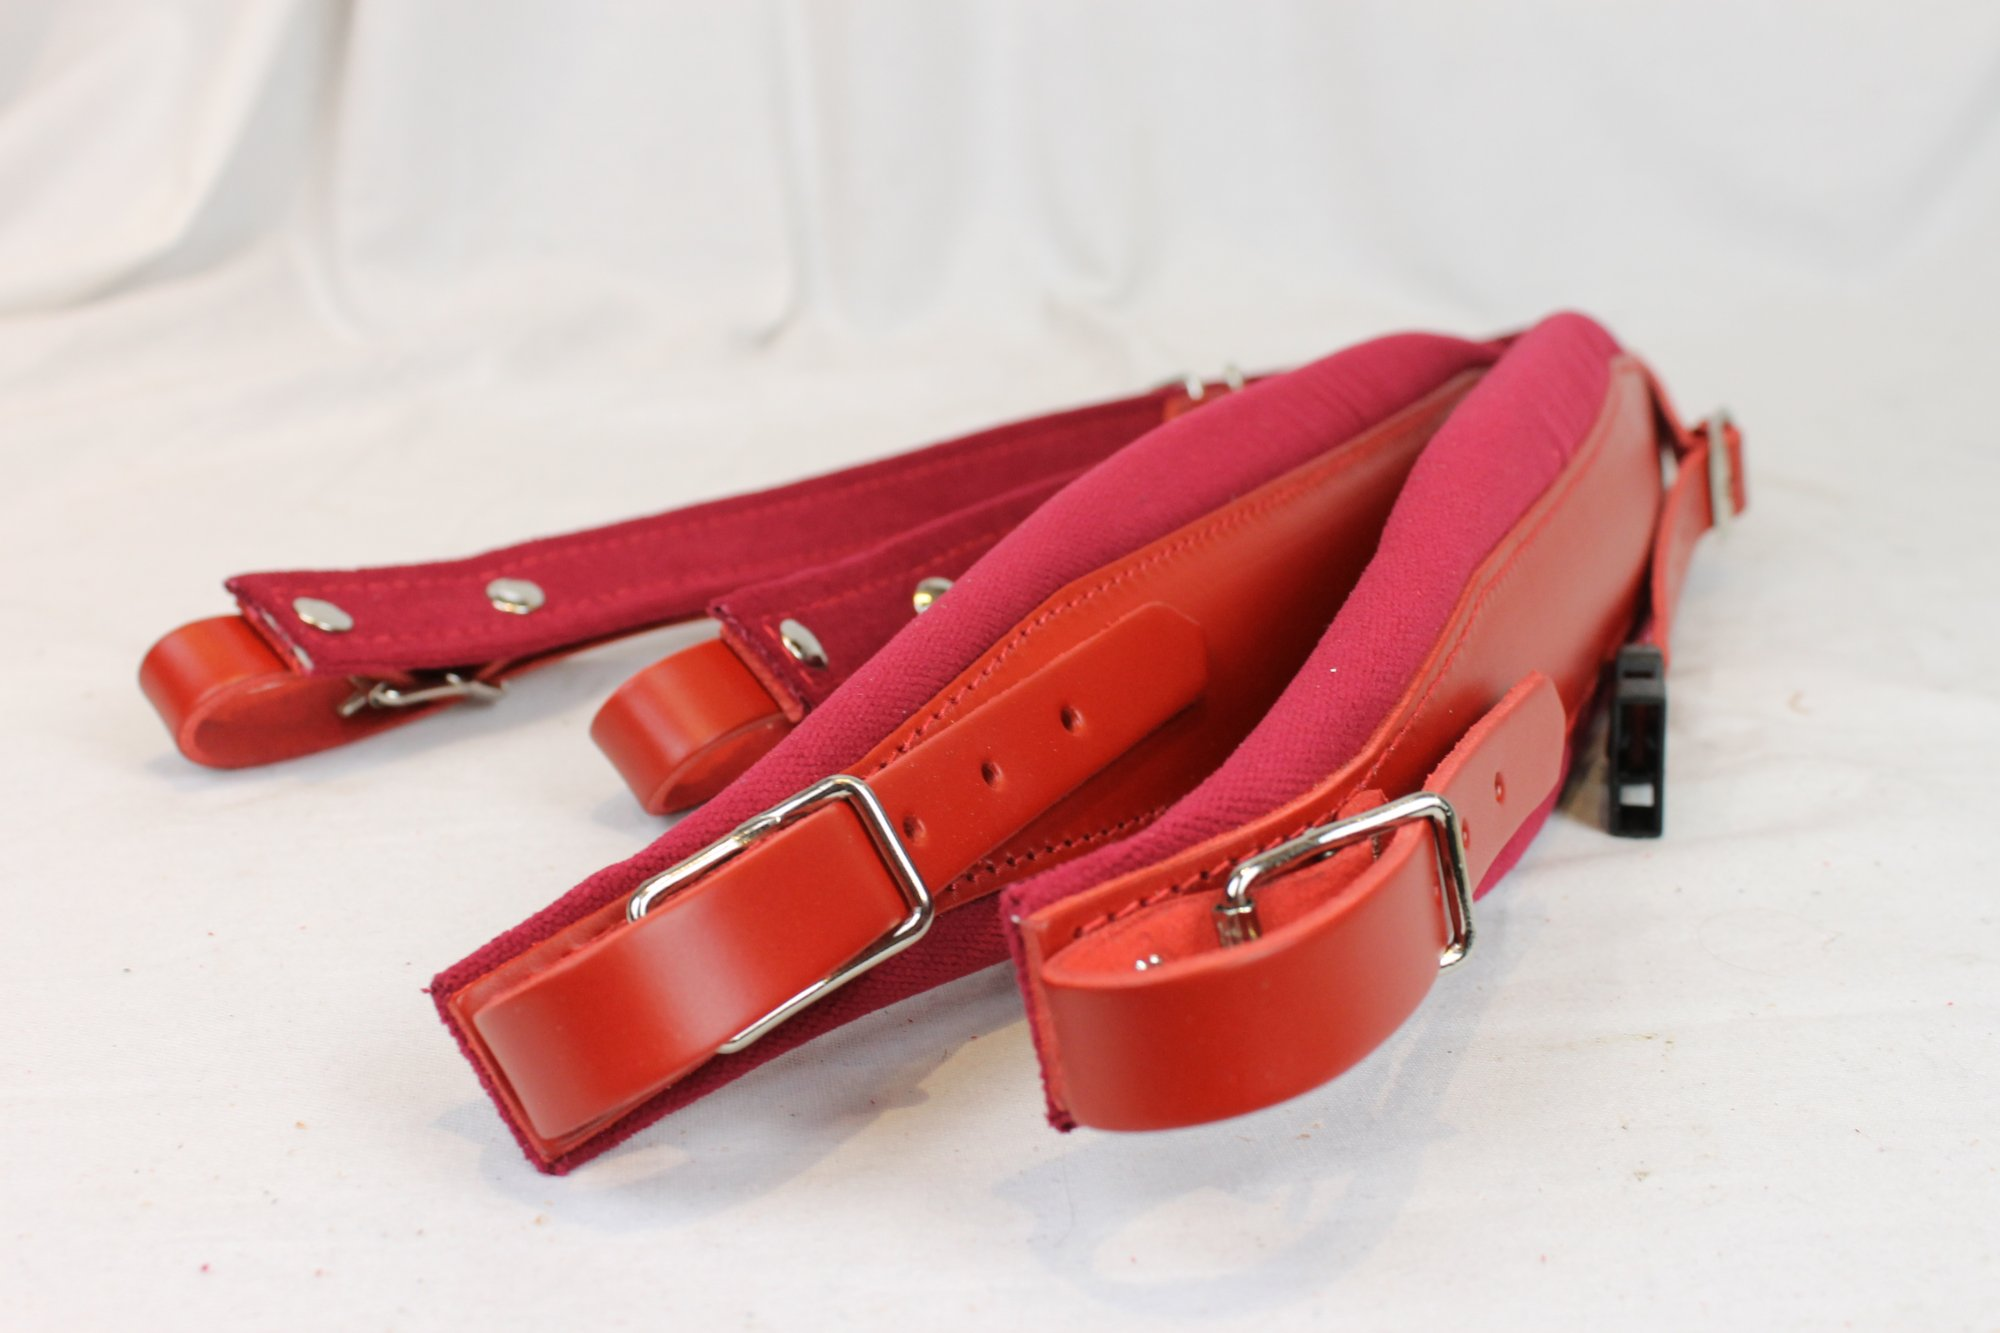 New Red Leather Velour Fuselli Accordion Shoulder Straps Width (8cm / 3.1in) Length (86cm-106cm / 33.9-41.7 inch)